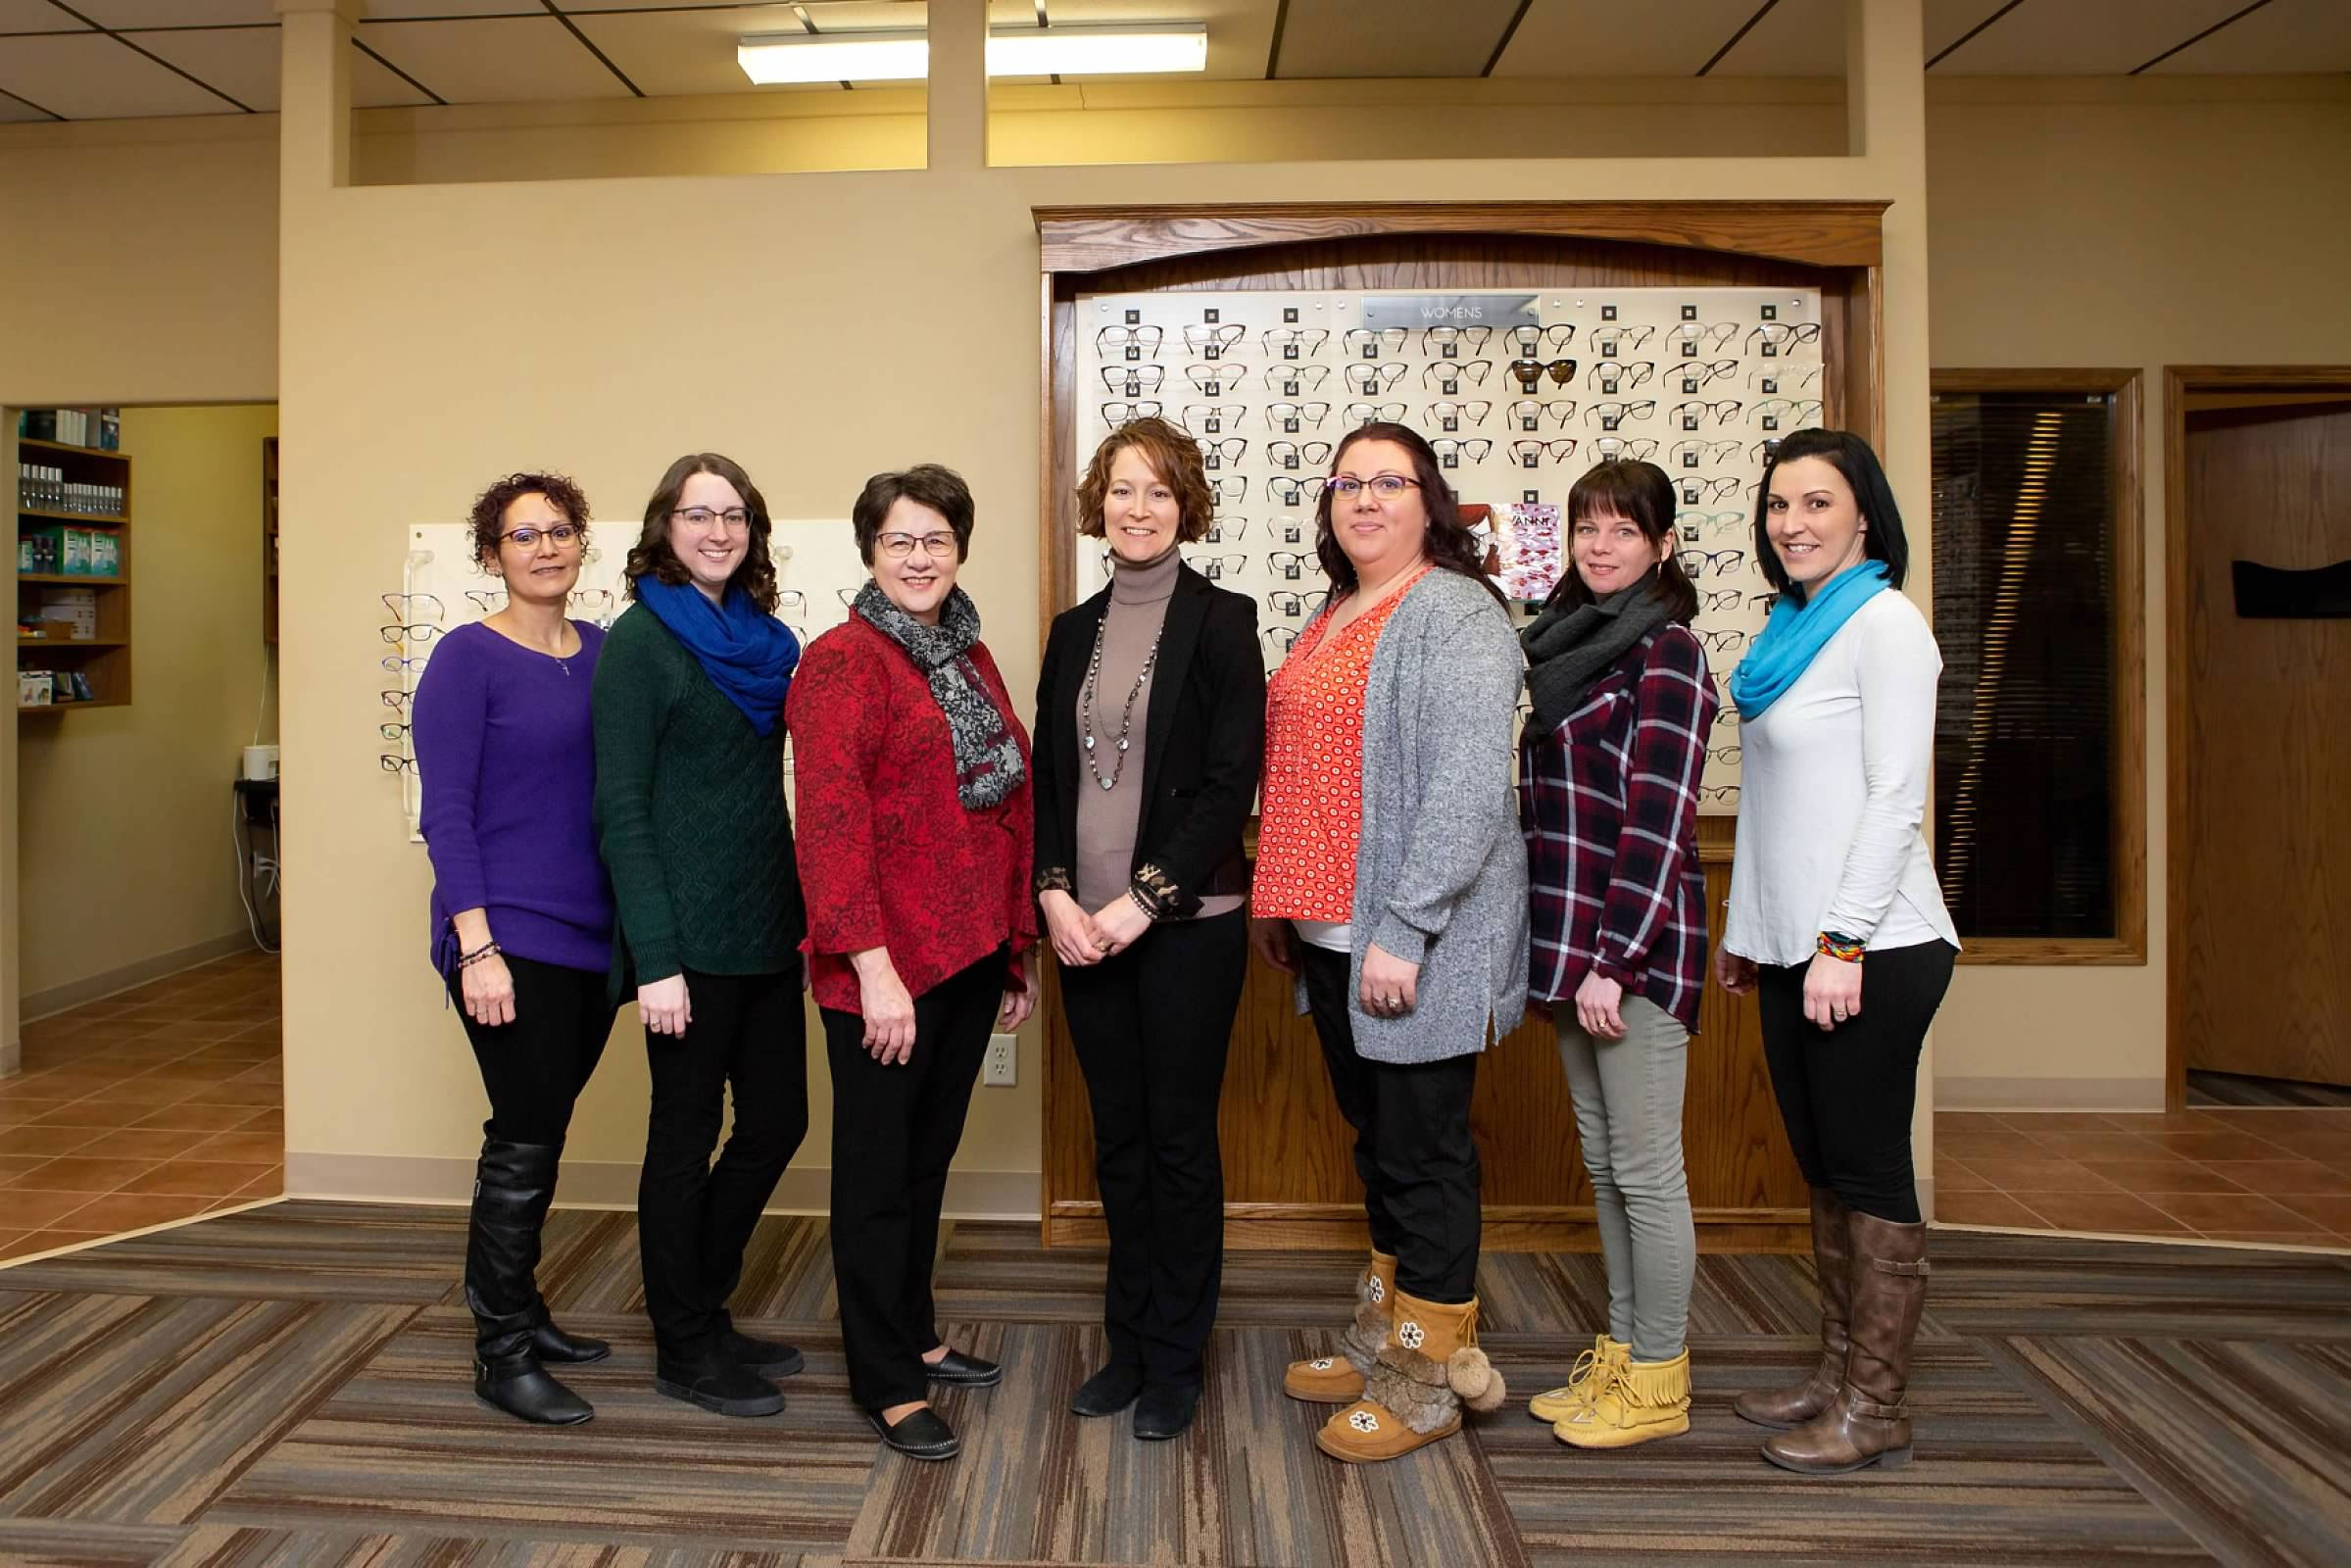 Staff of Vision North Eye Care